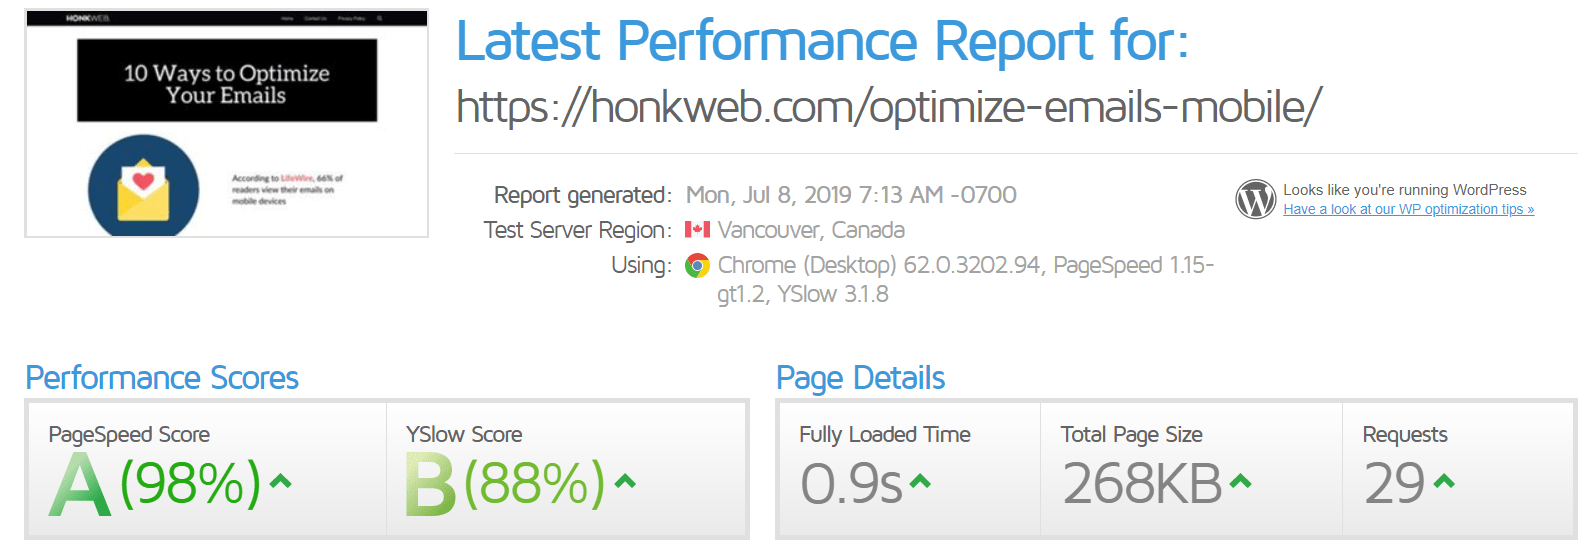 honkweb vapourhost speed test 1